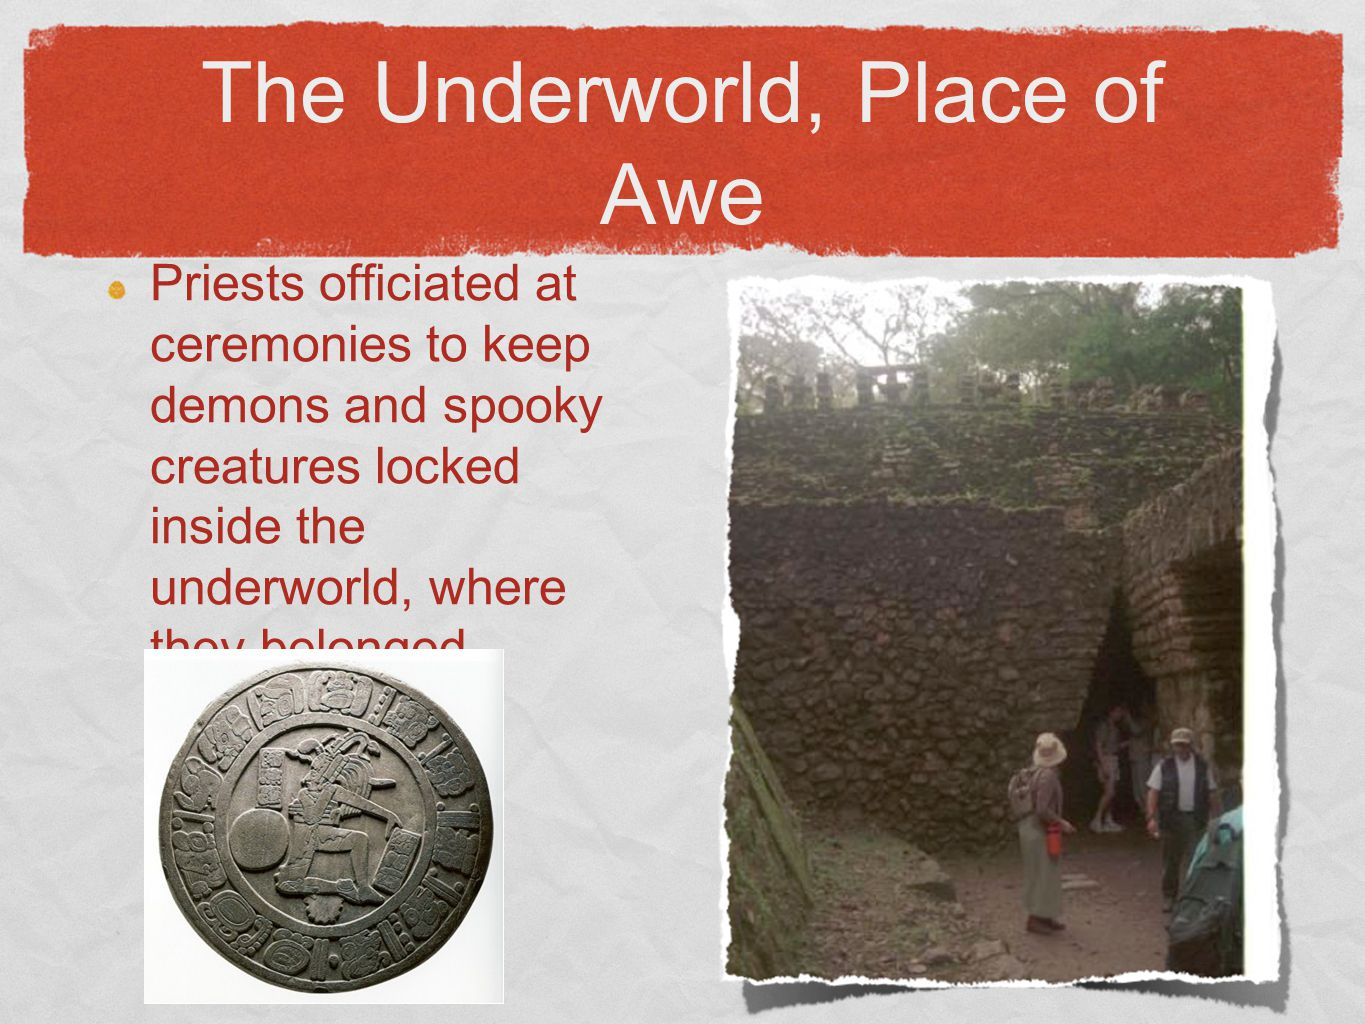 The Underworld, Place of Awe